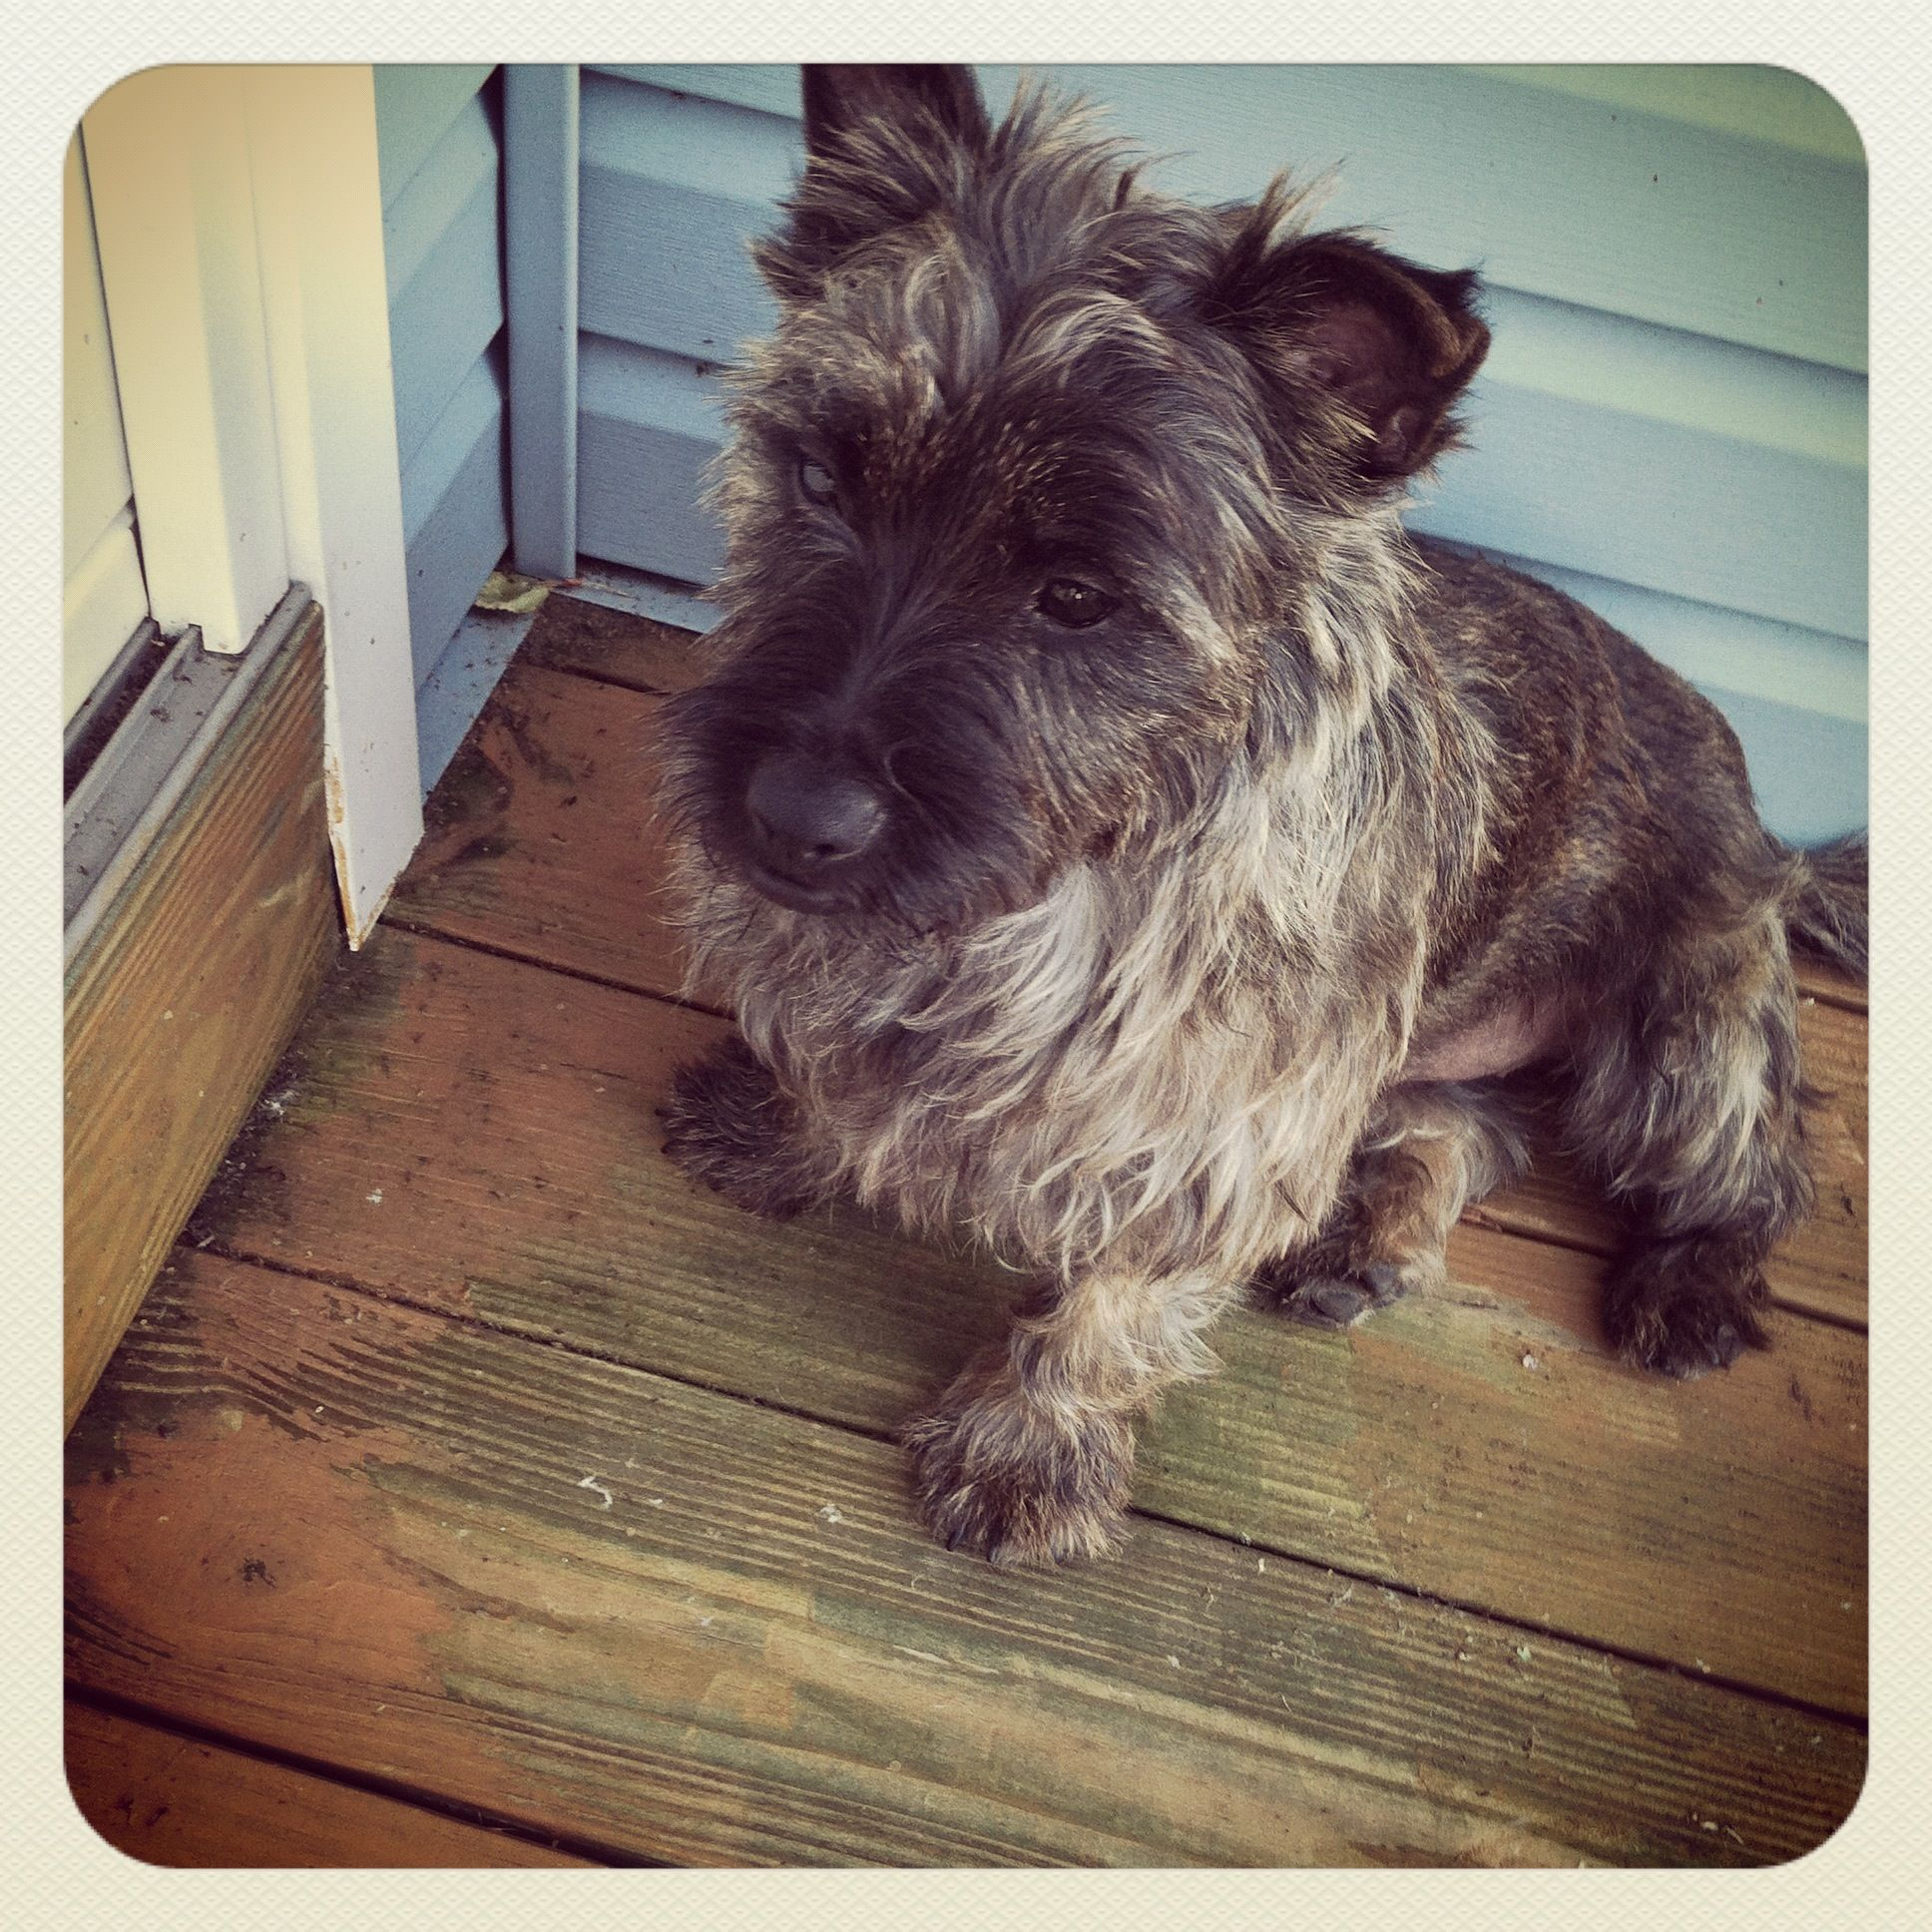 Love cairn terriers!